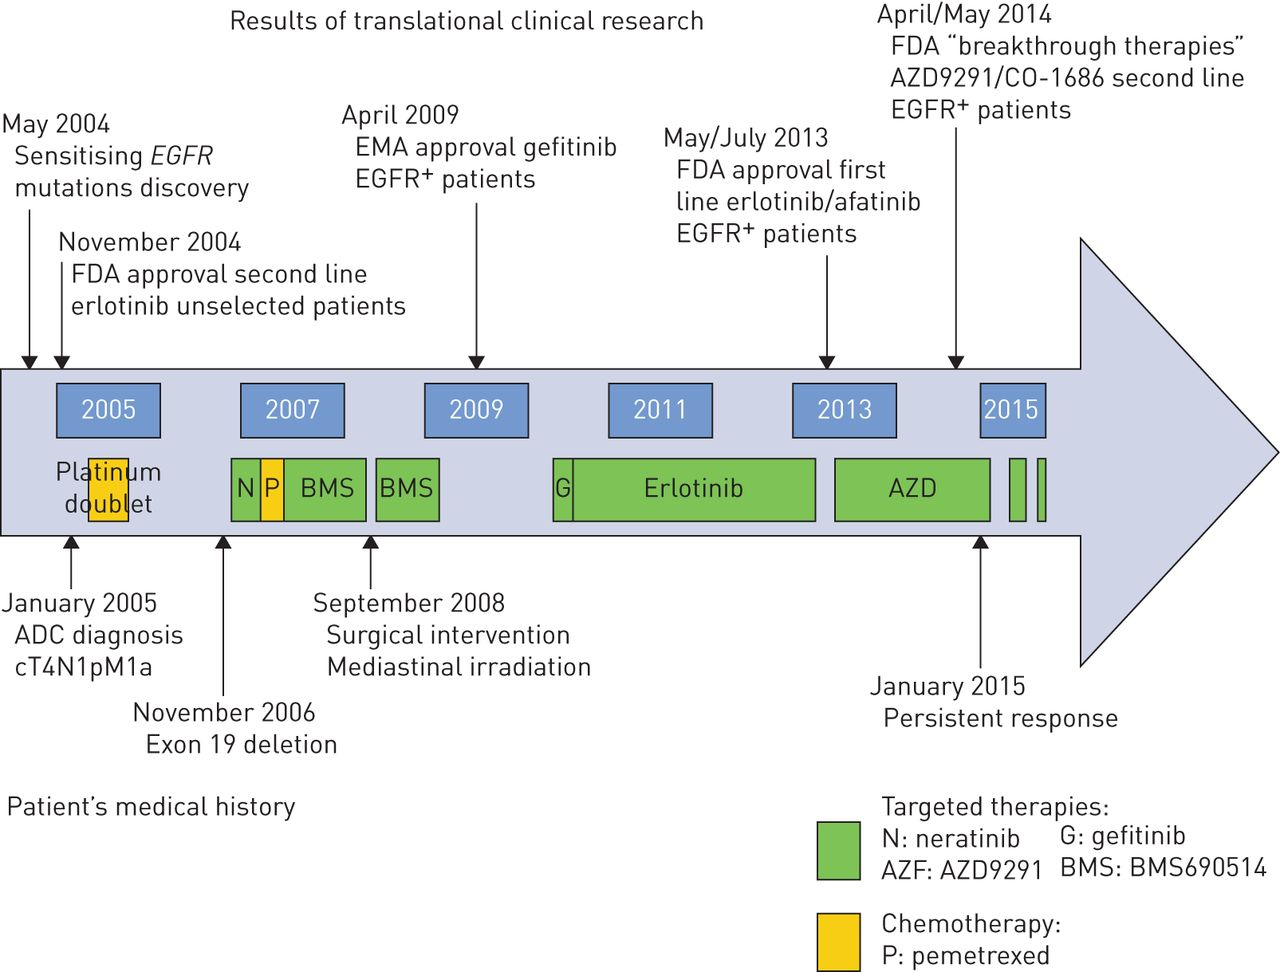 10-year long-term survival of a metastatic EGFR-mutated